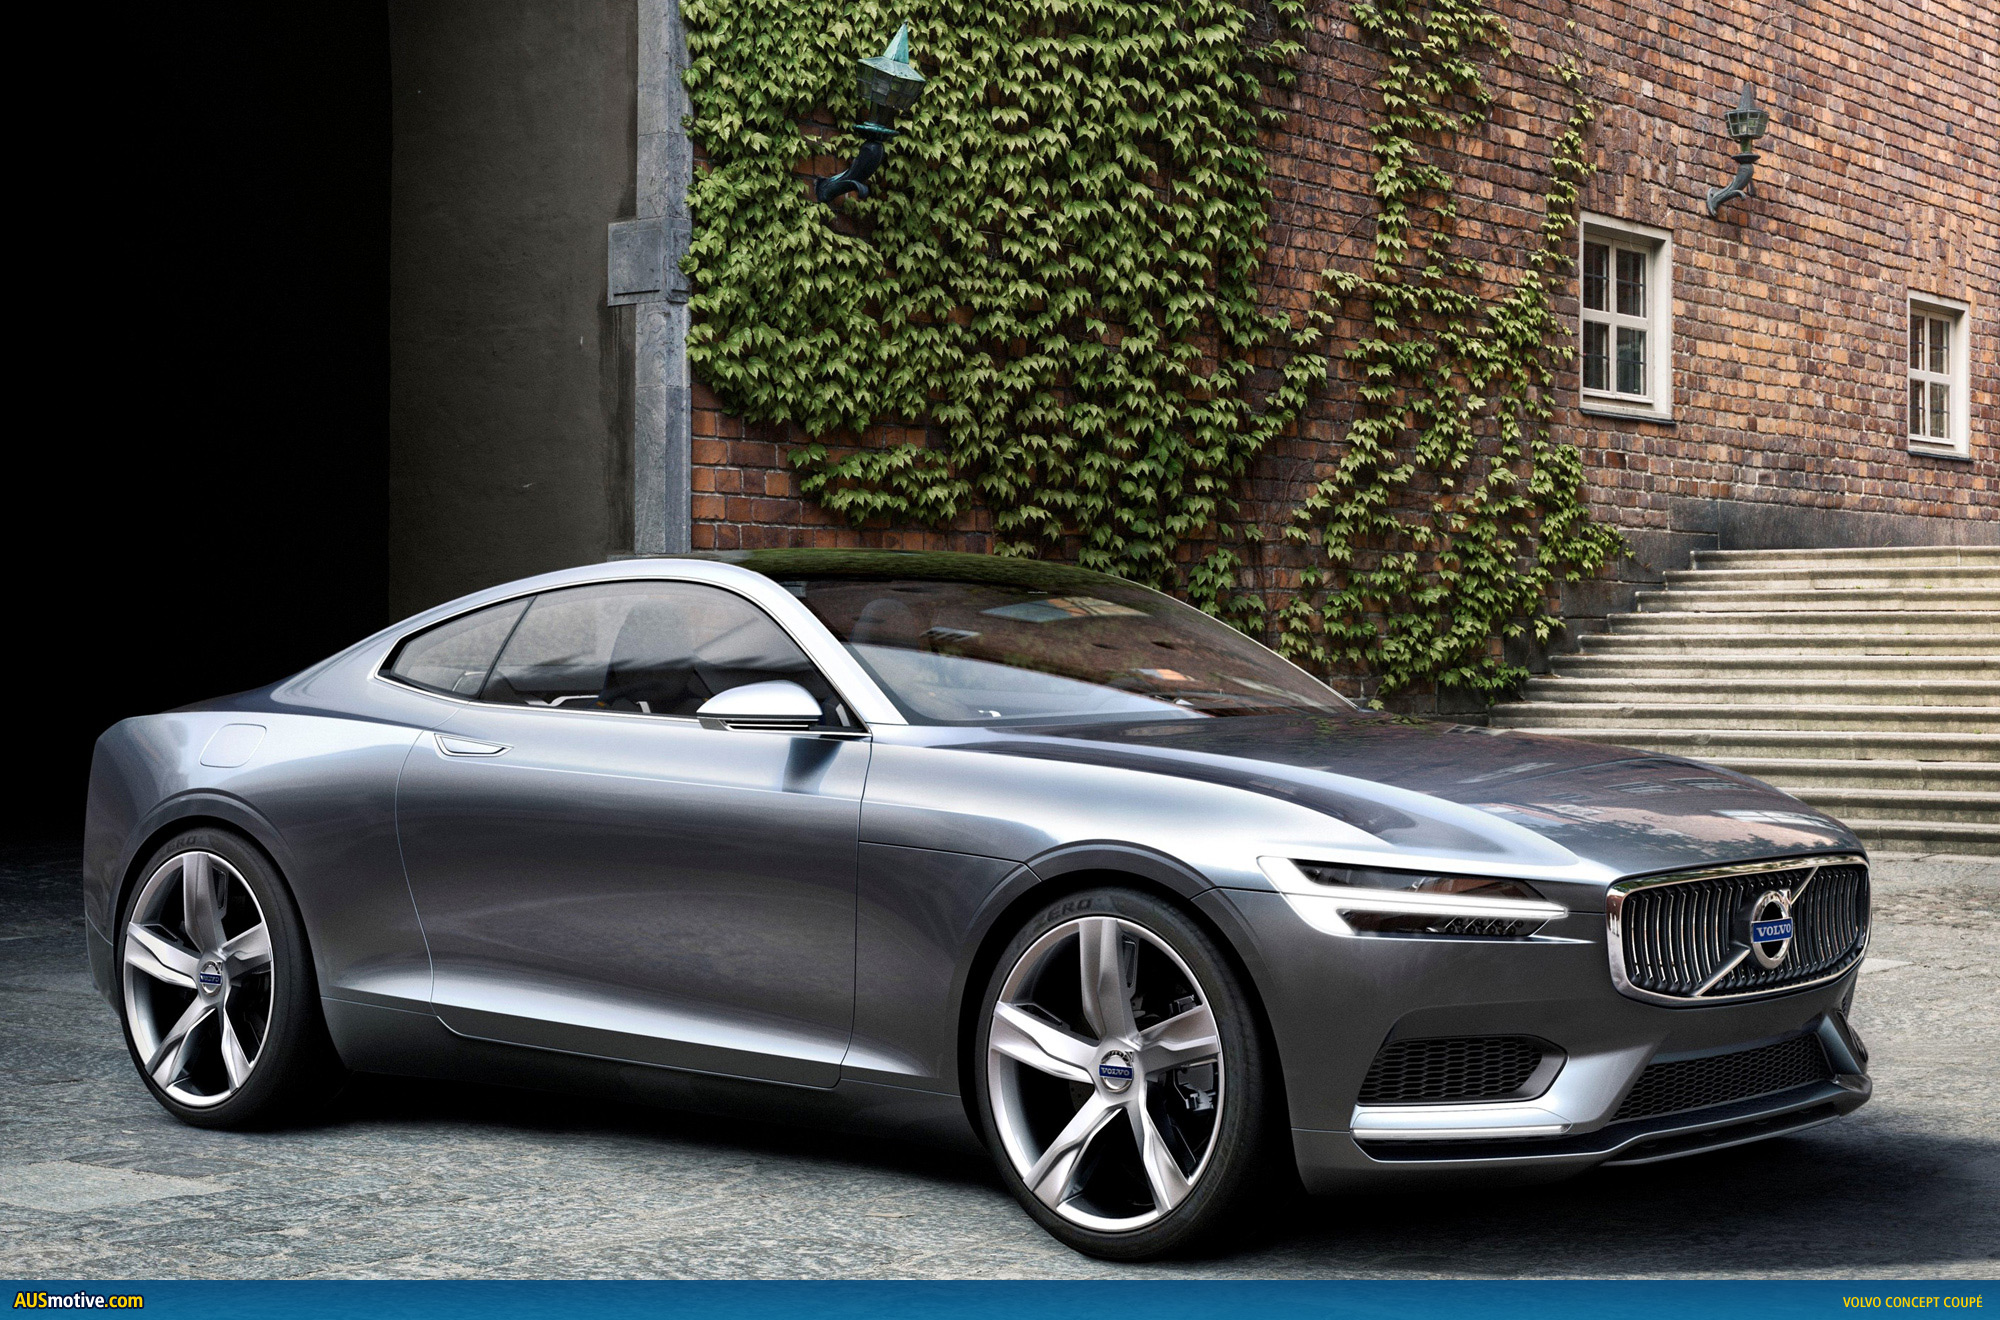 AUSmotive.com » Volvo Concept Coupé revealed